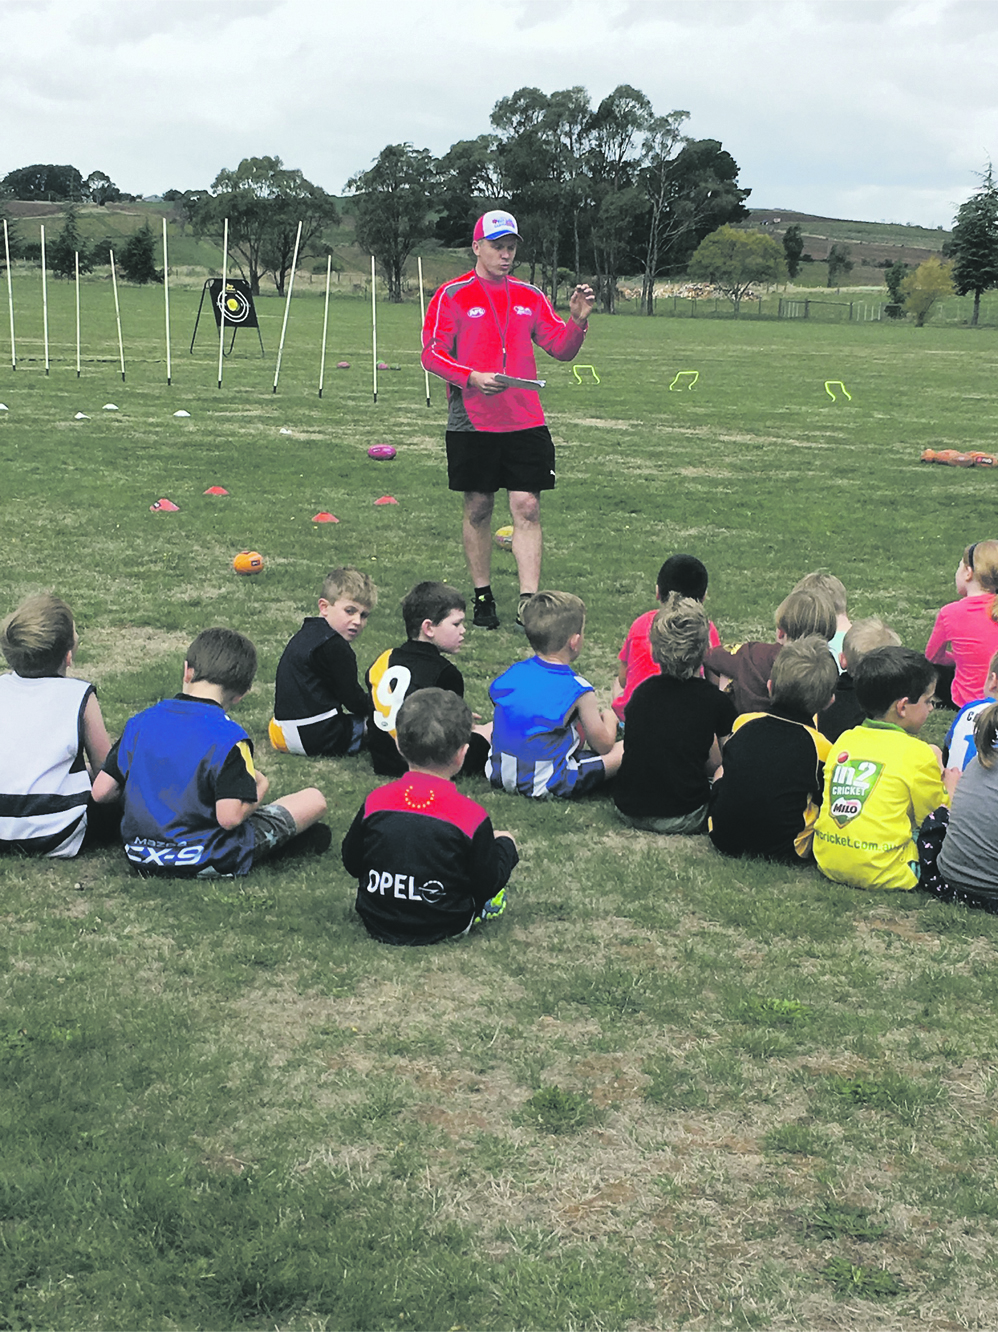 Photo Supplied  James Baldock at Auskick, with some possible future players for the Deloraine Roos or the Tasmanian AFL team.